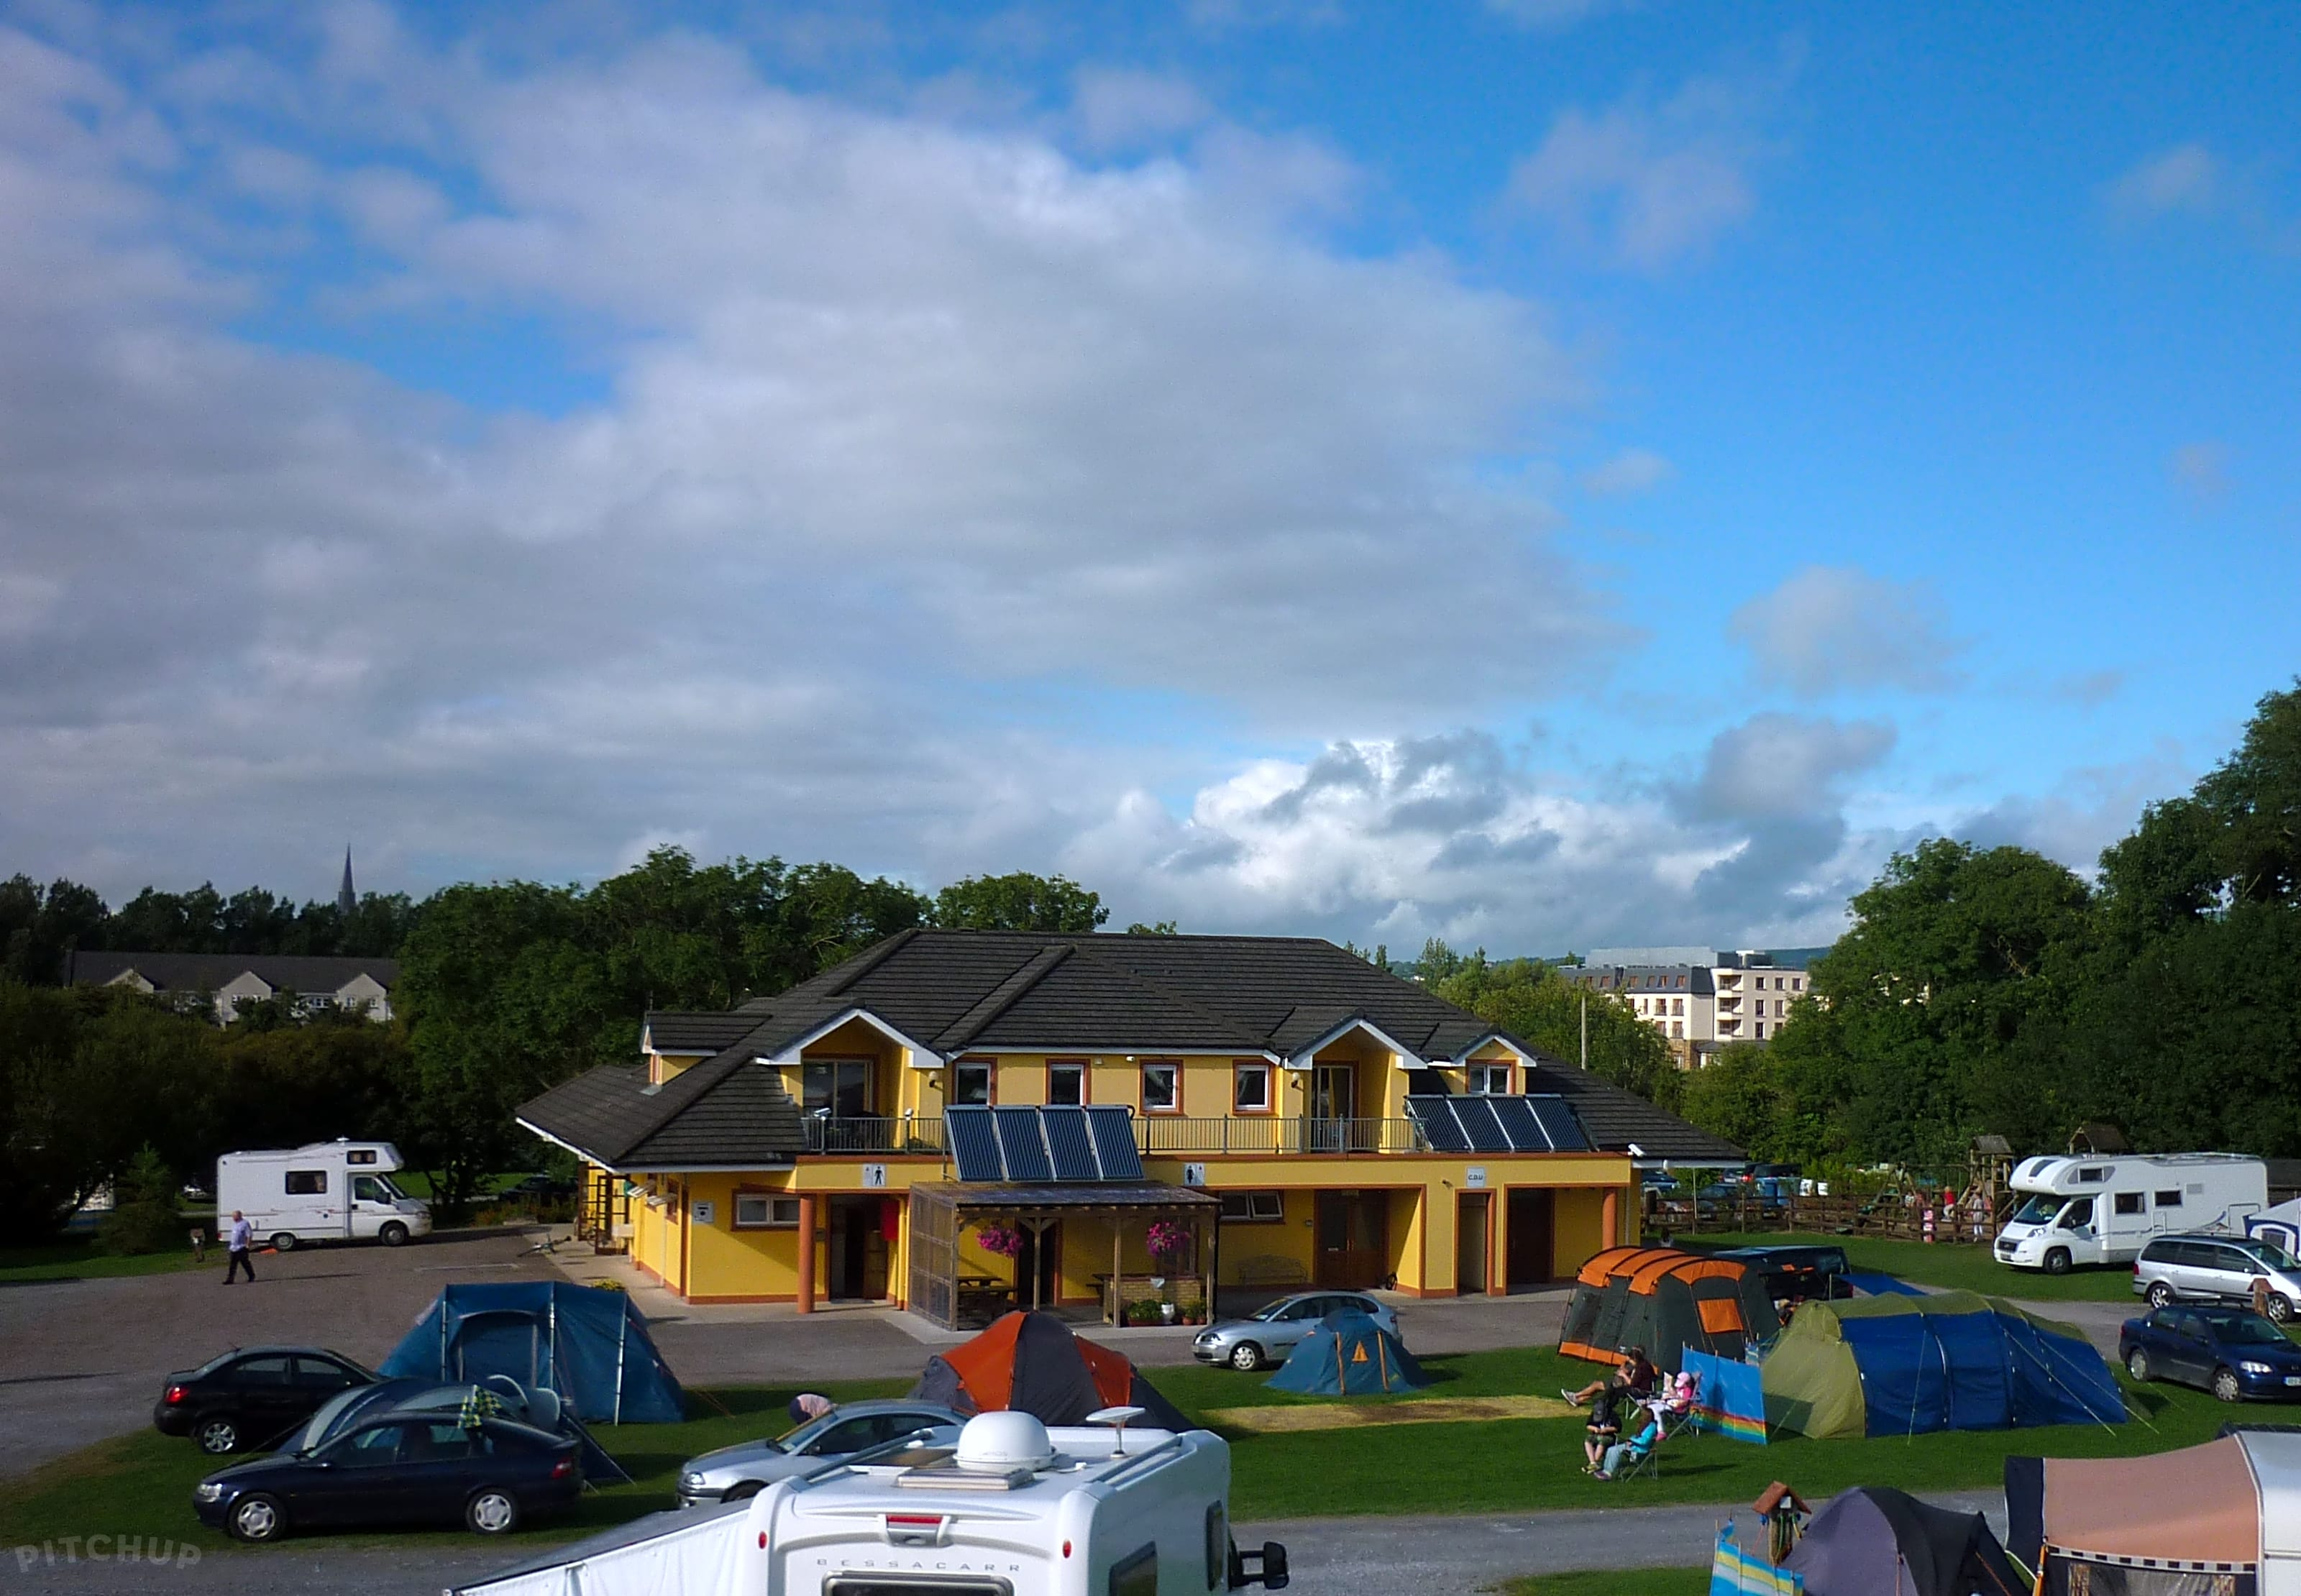 Find the Best Caravan Sites in Listowel, Co. Kerry - Pitchup